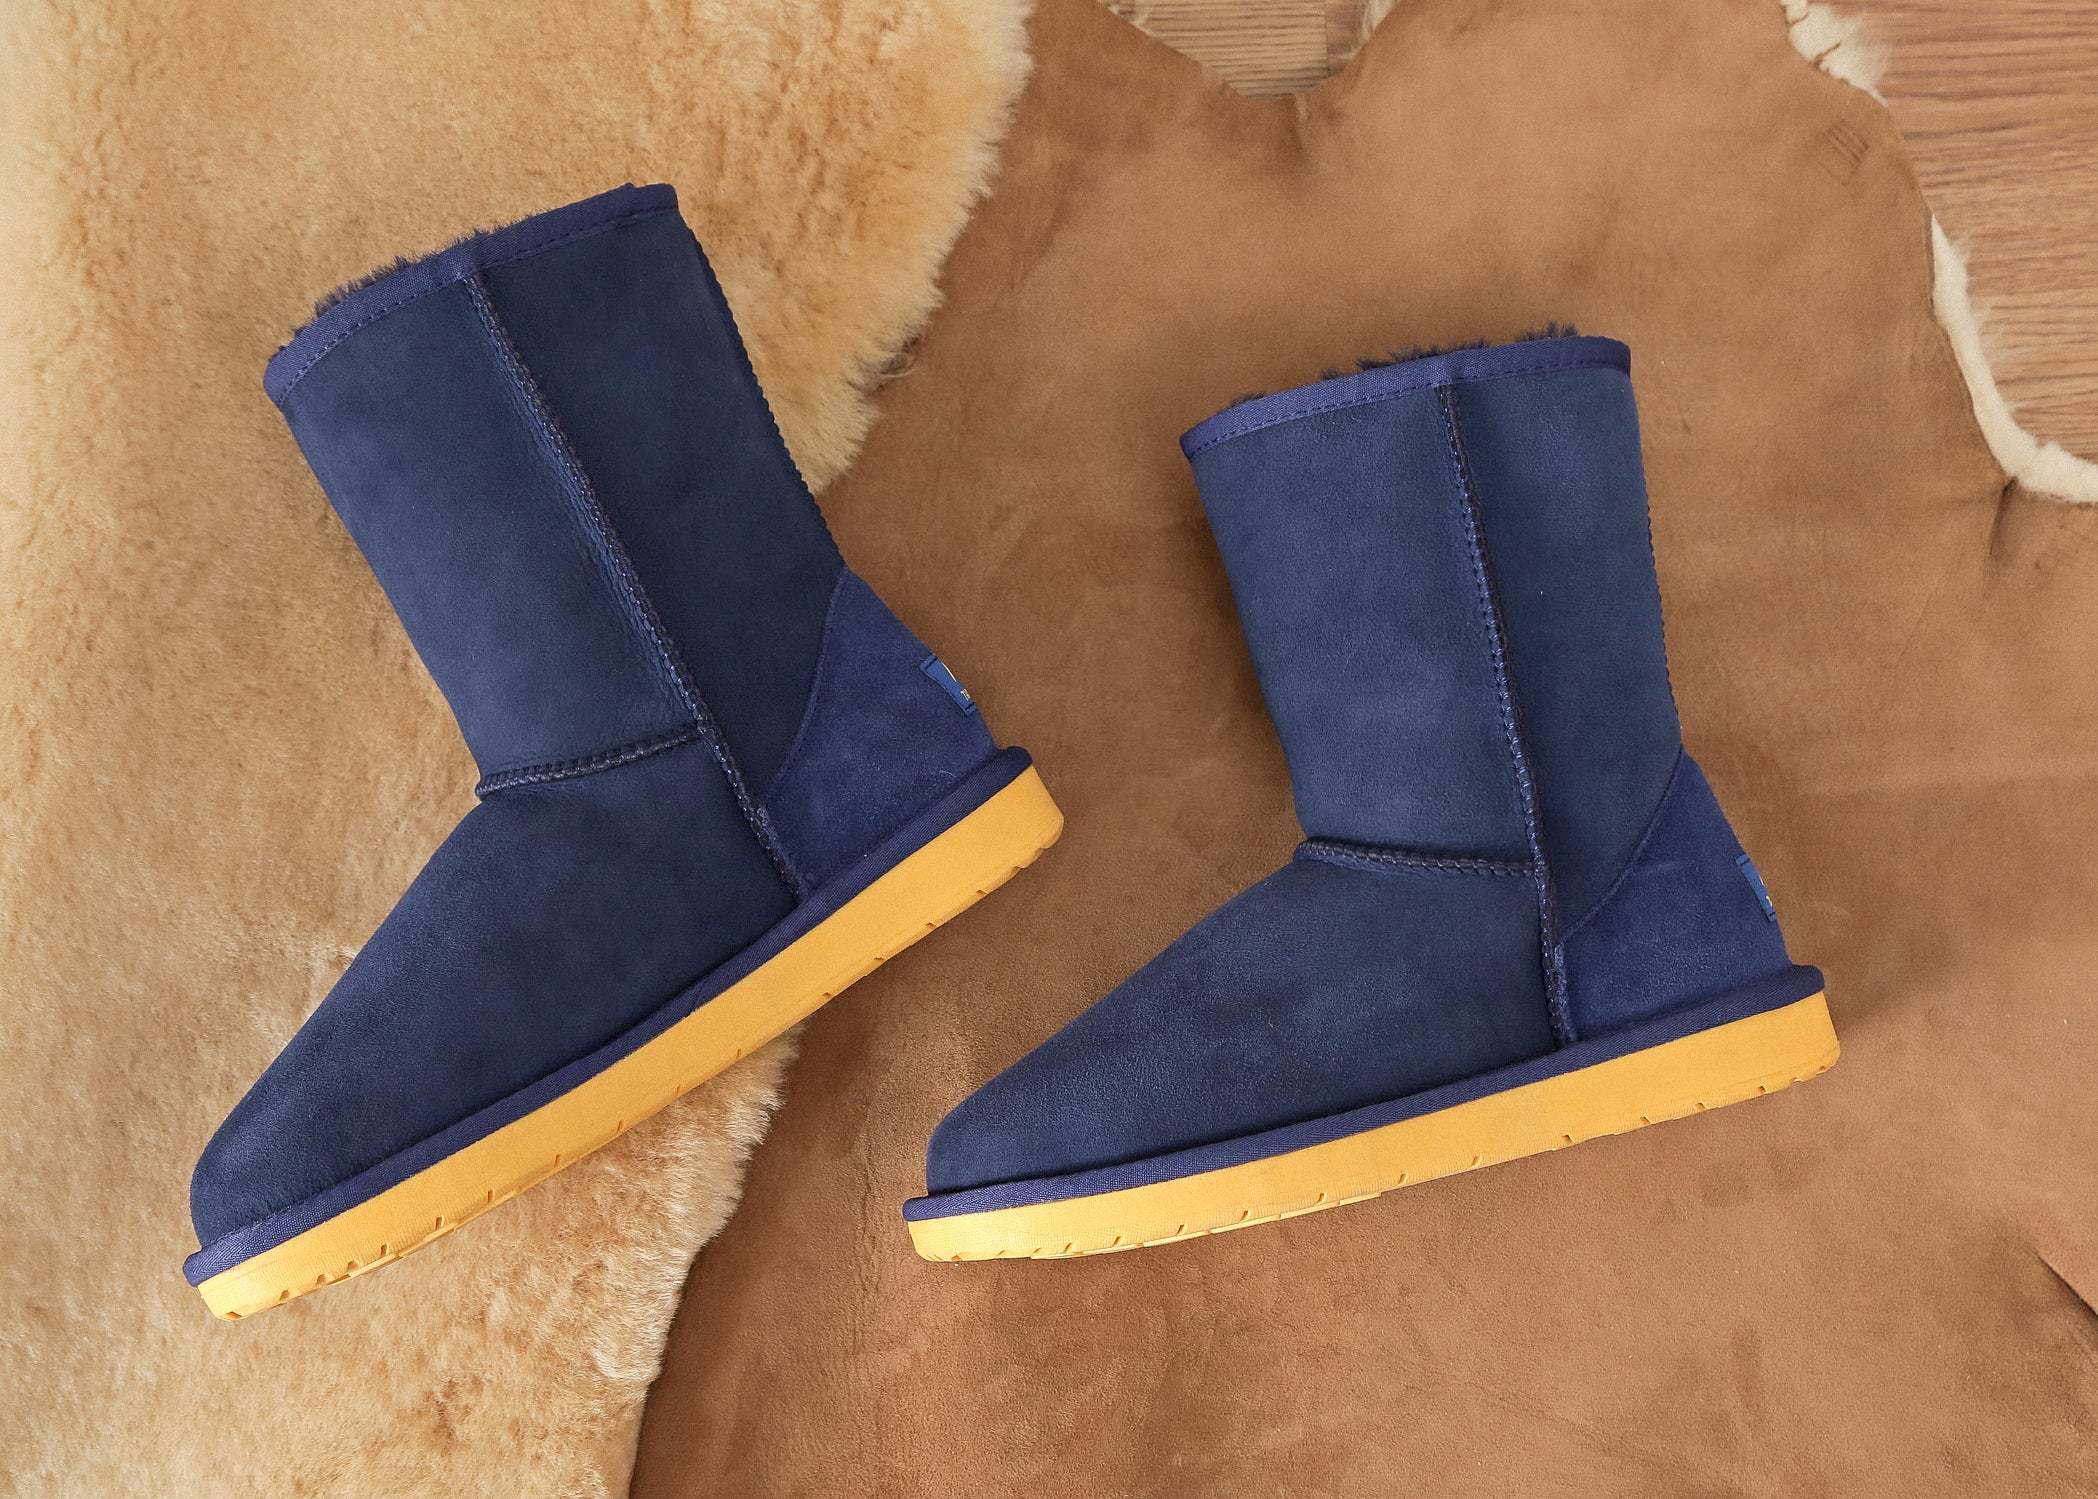 cancer council classic ugg boots